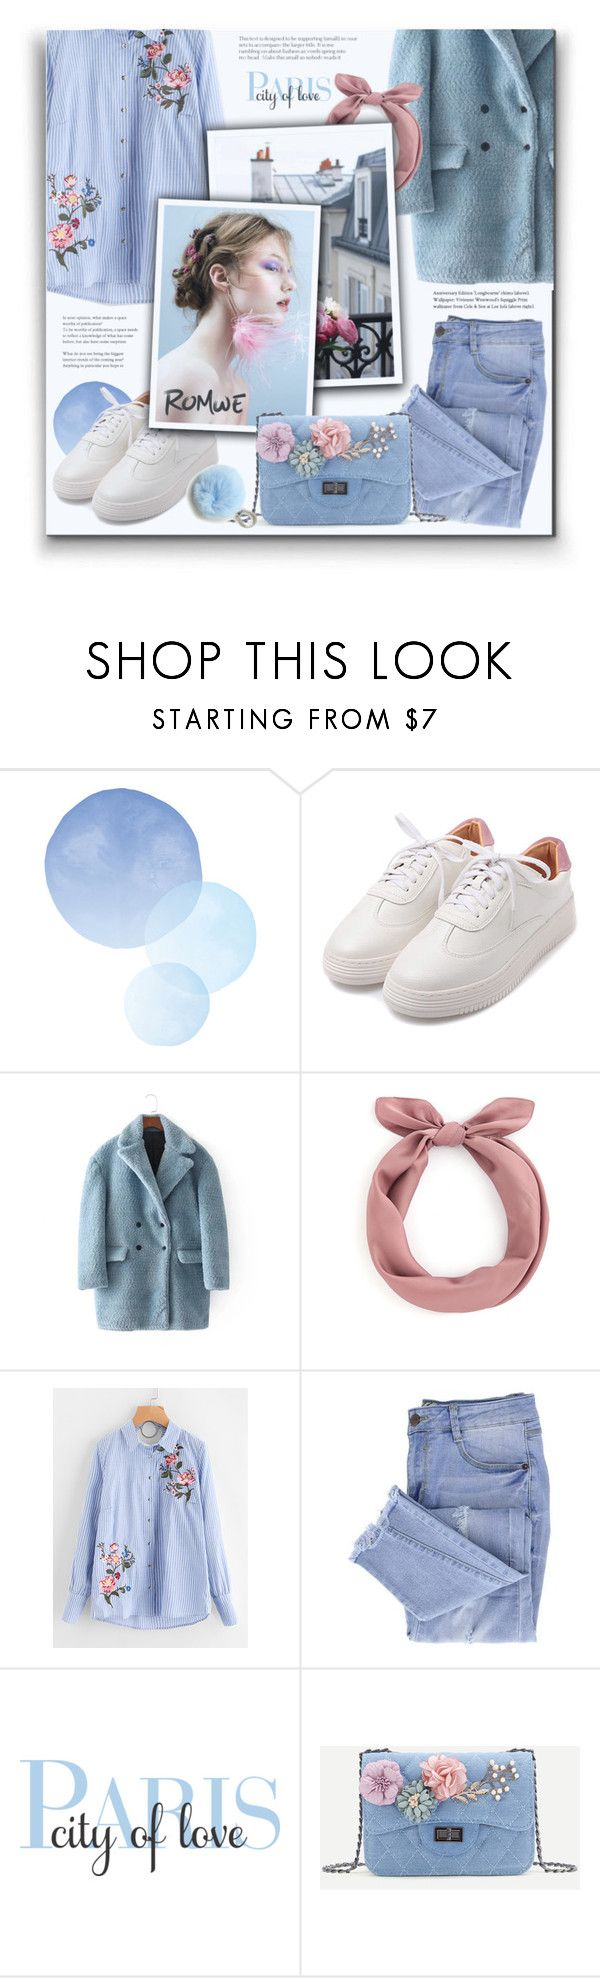 """Baby Blue"" by hanicelma ❤ liked on Polyvore featuring Essie, WALL, Etienne Aigner, romwe and babyblue"